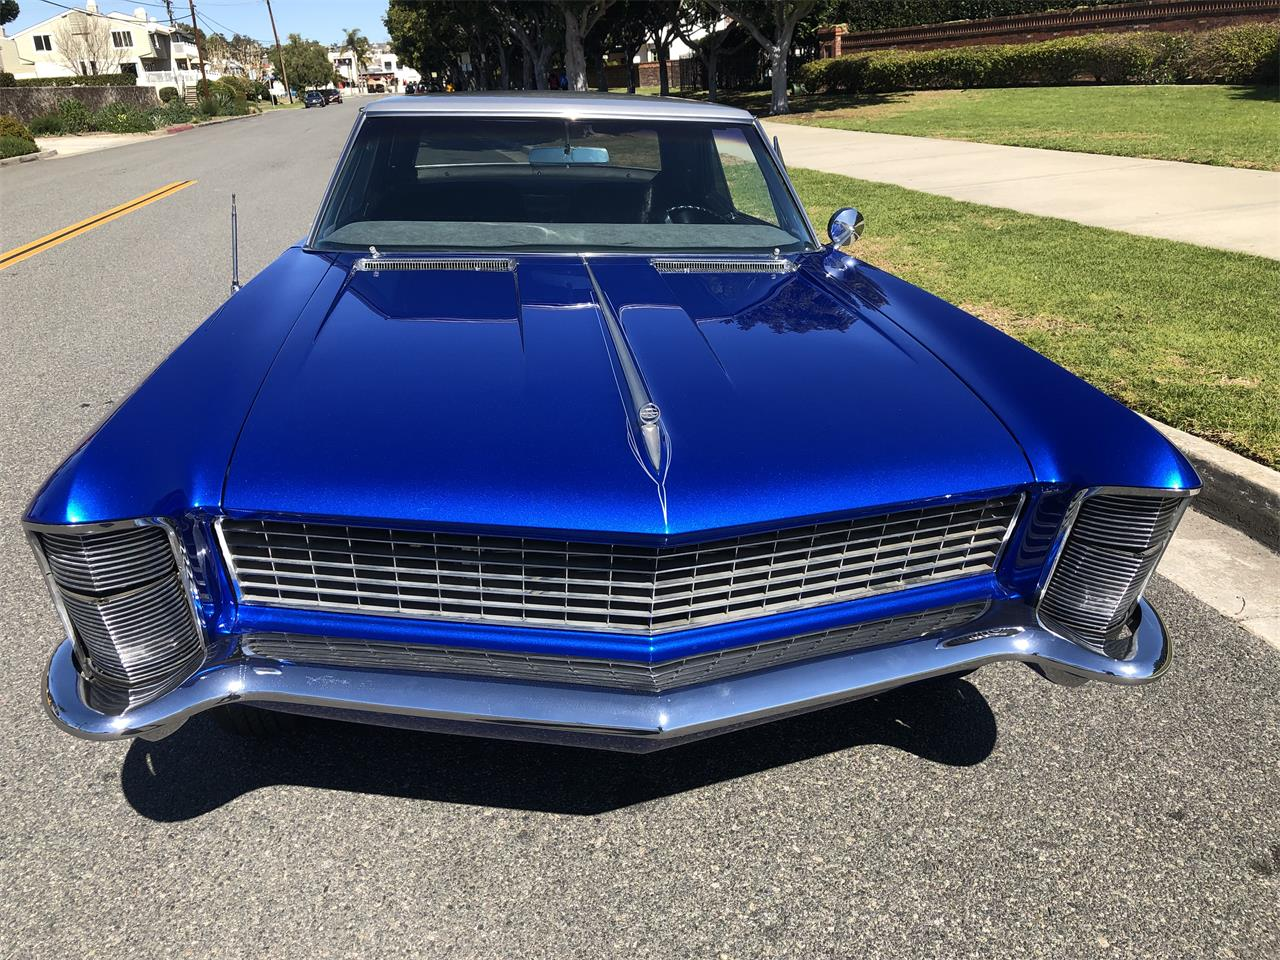 Large Picture of 1965 Buick Riviera located in California Offered by a Private Seller - QHFP